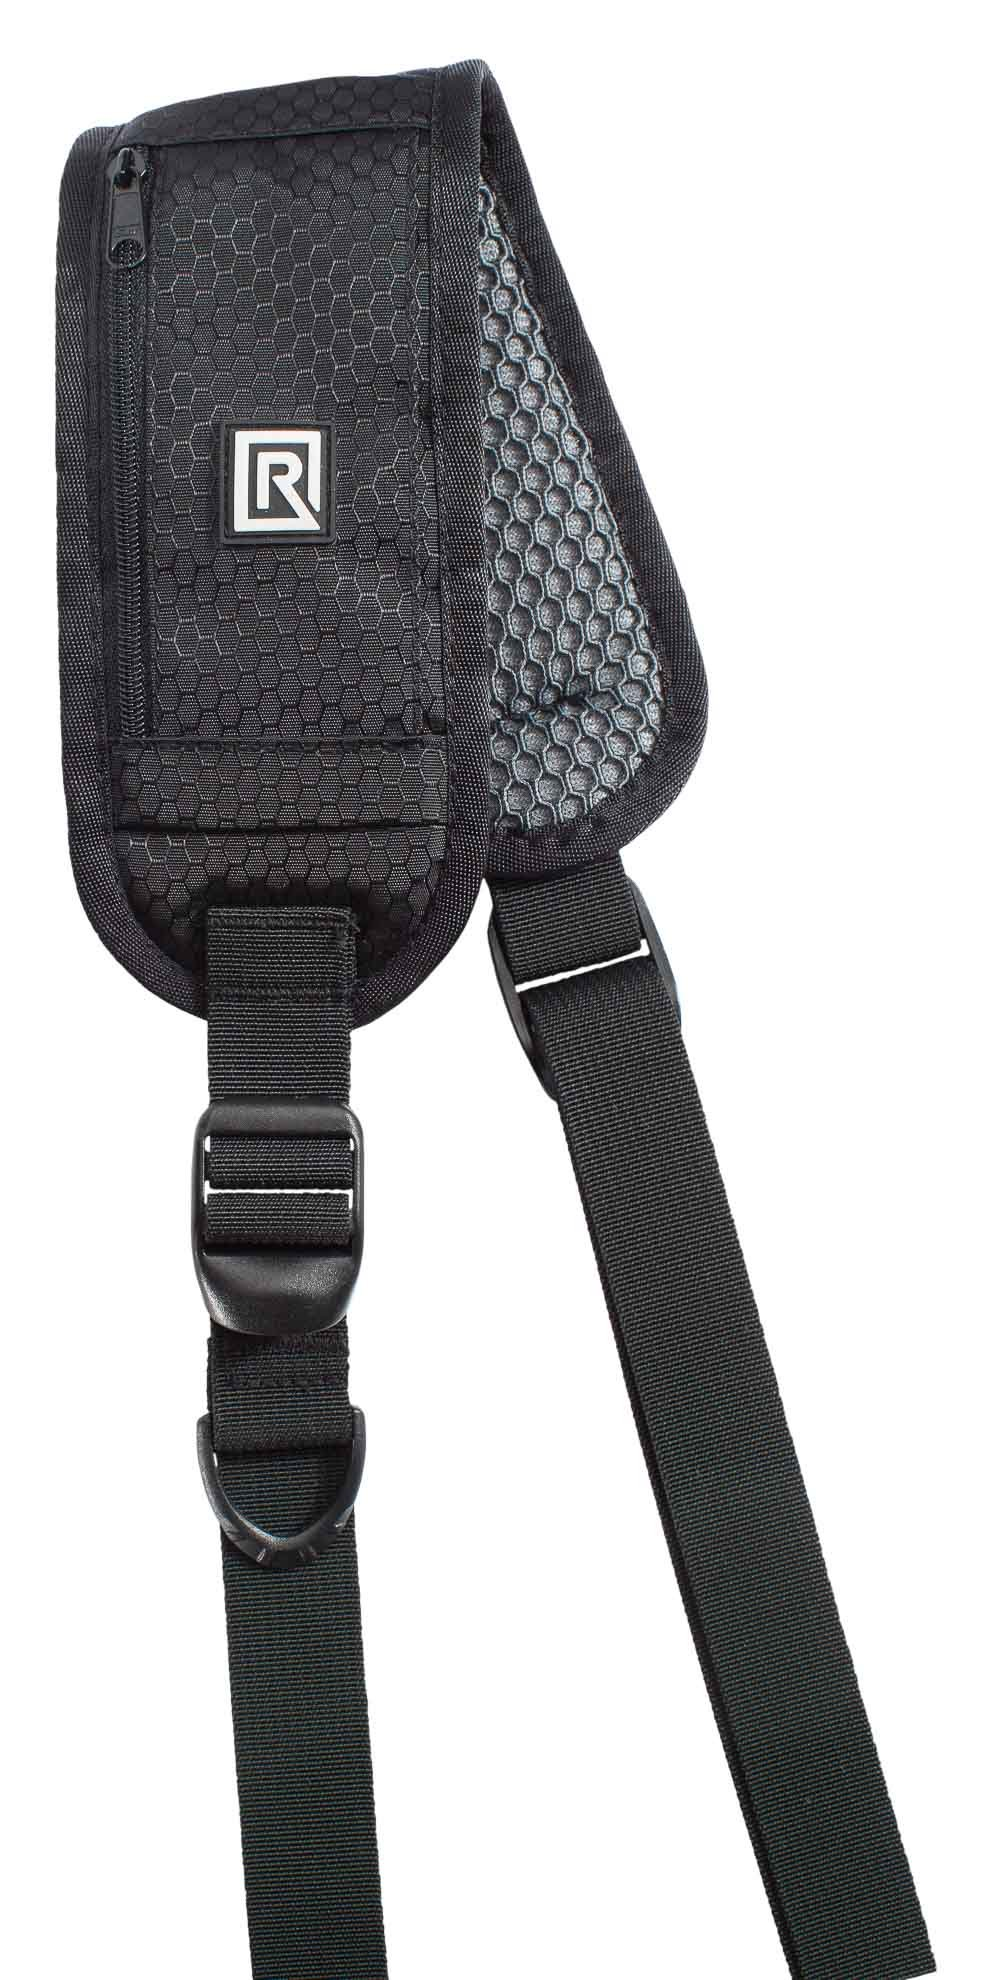 BLACKRAPID Classic Retro (RS4) Camera Strap, 1pc of Safety Tether Included - 10th Anniversary Edition by BlackRapid (Image #2)